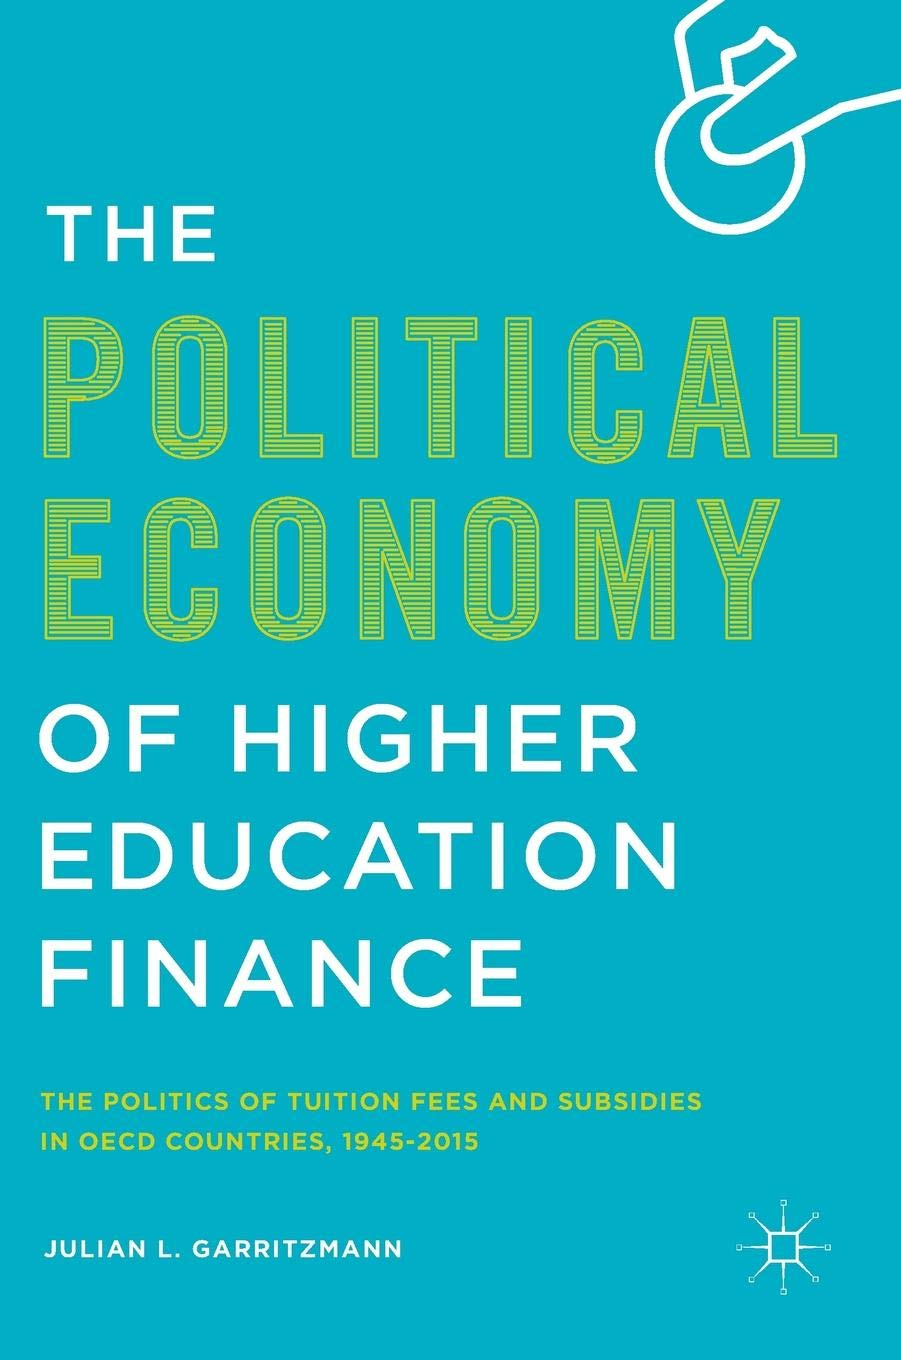 The Political Economy of Higher Education Finance: The Politics of Tuition Fees and Subsidies in OECD Countries,1945-2015 by Palgrave Macmillan